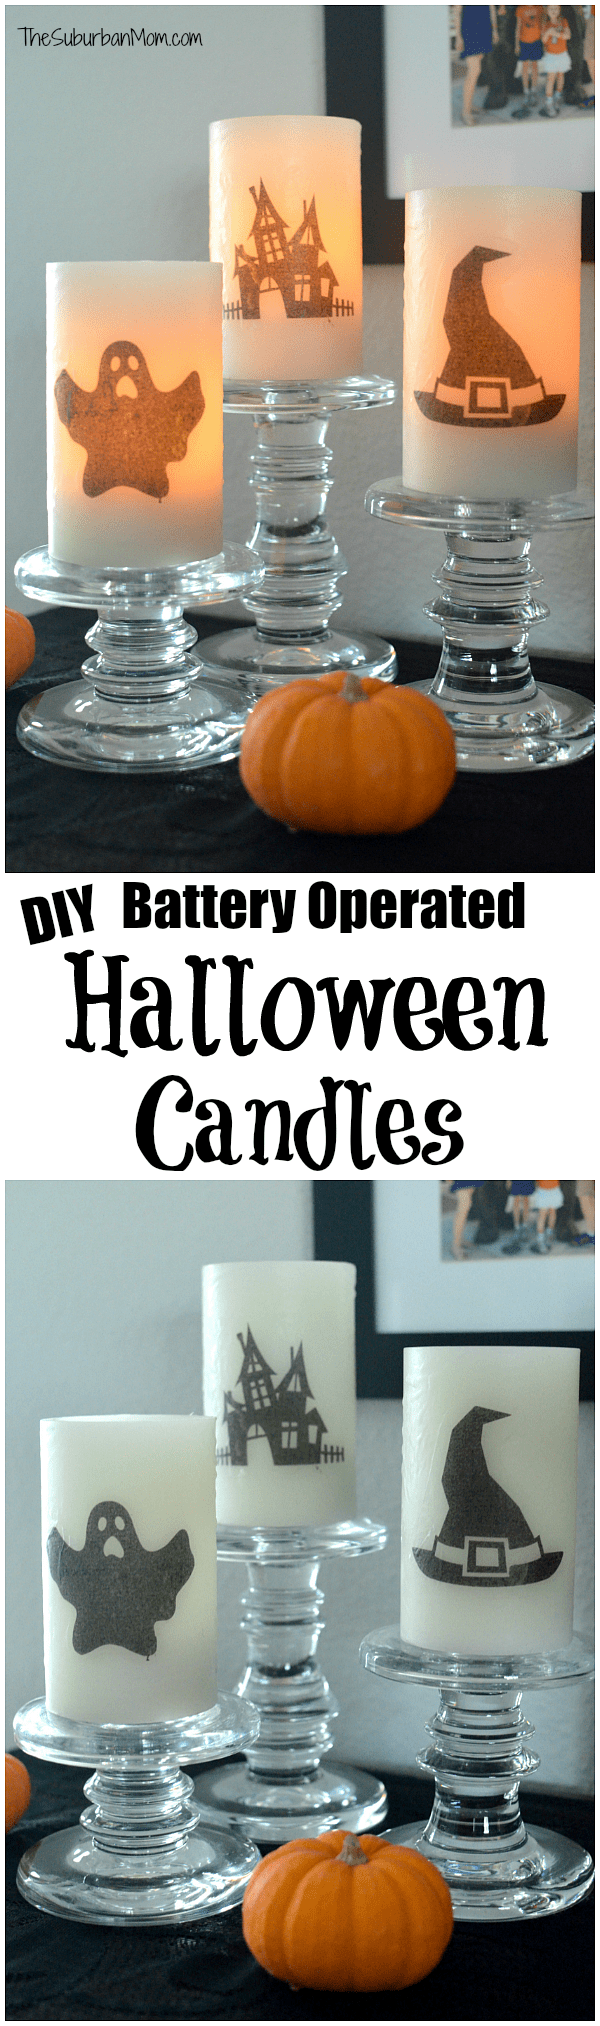 Battery Operated Halloween Candles